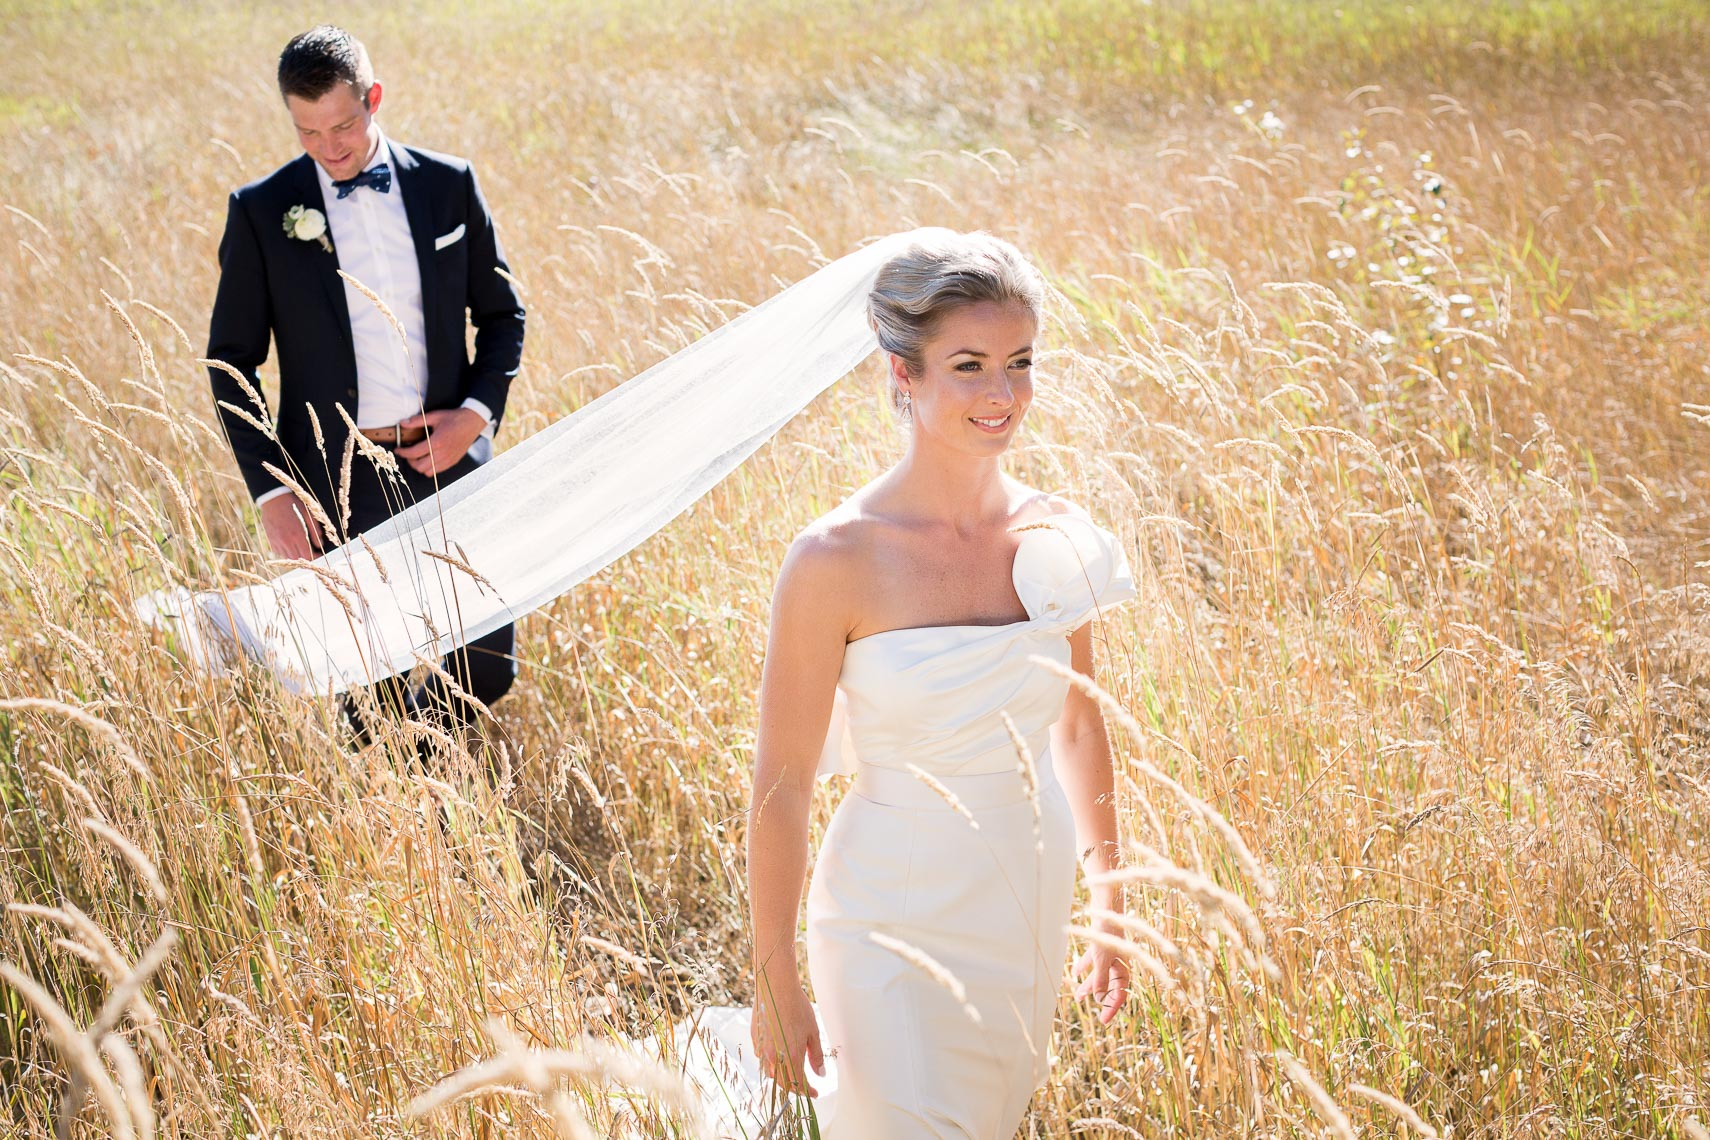 Bride and groom in a field in whistler wedding photo